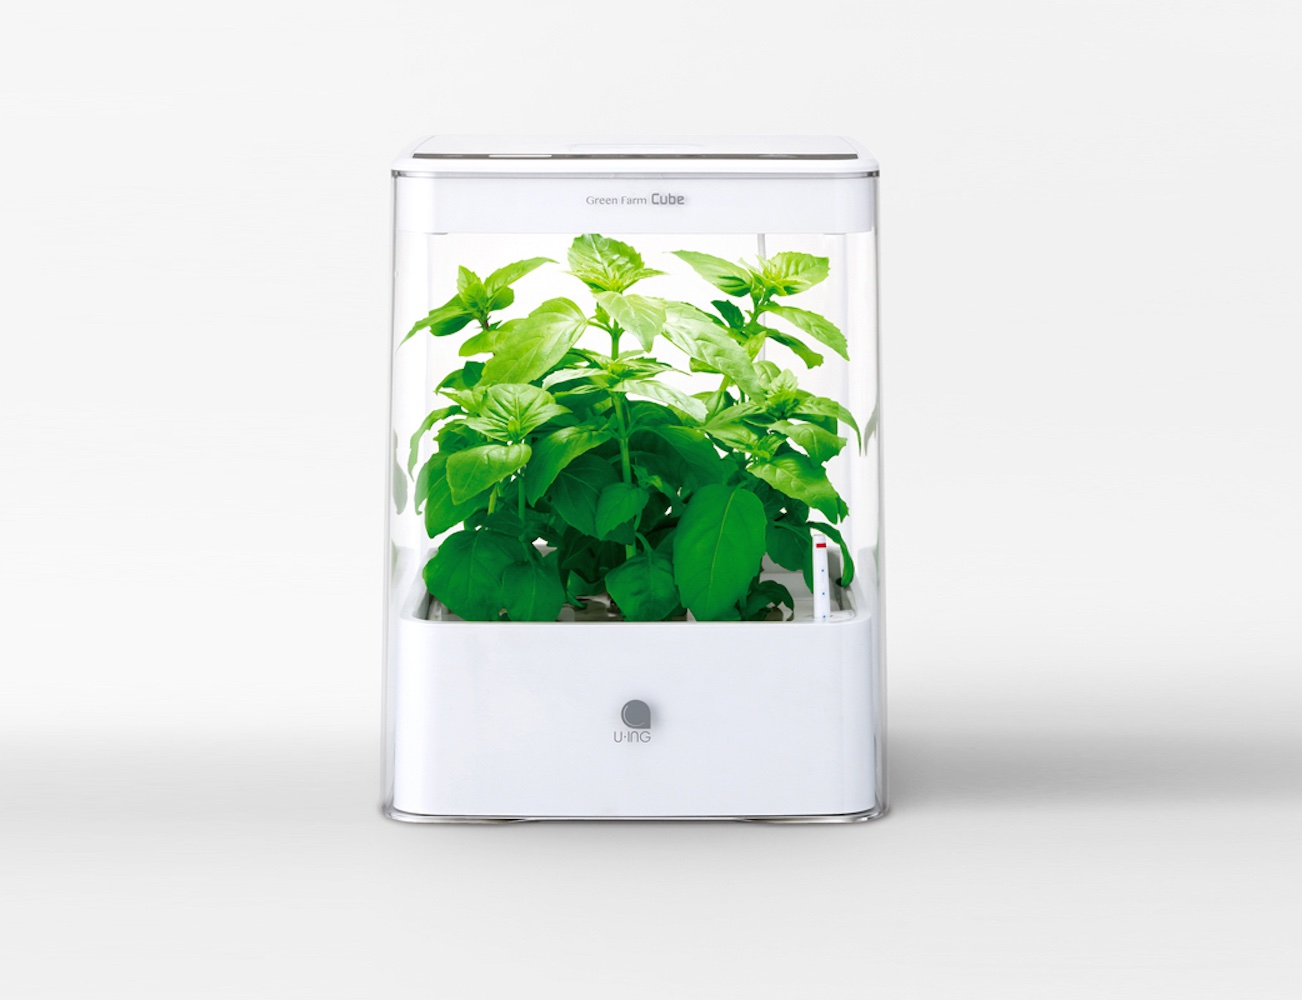 Cube Green Farm Hydroponic Grow Box By U Ing 187 Review